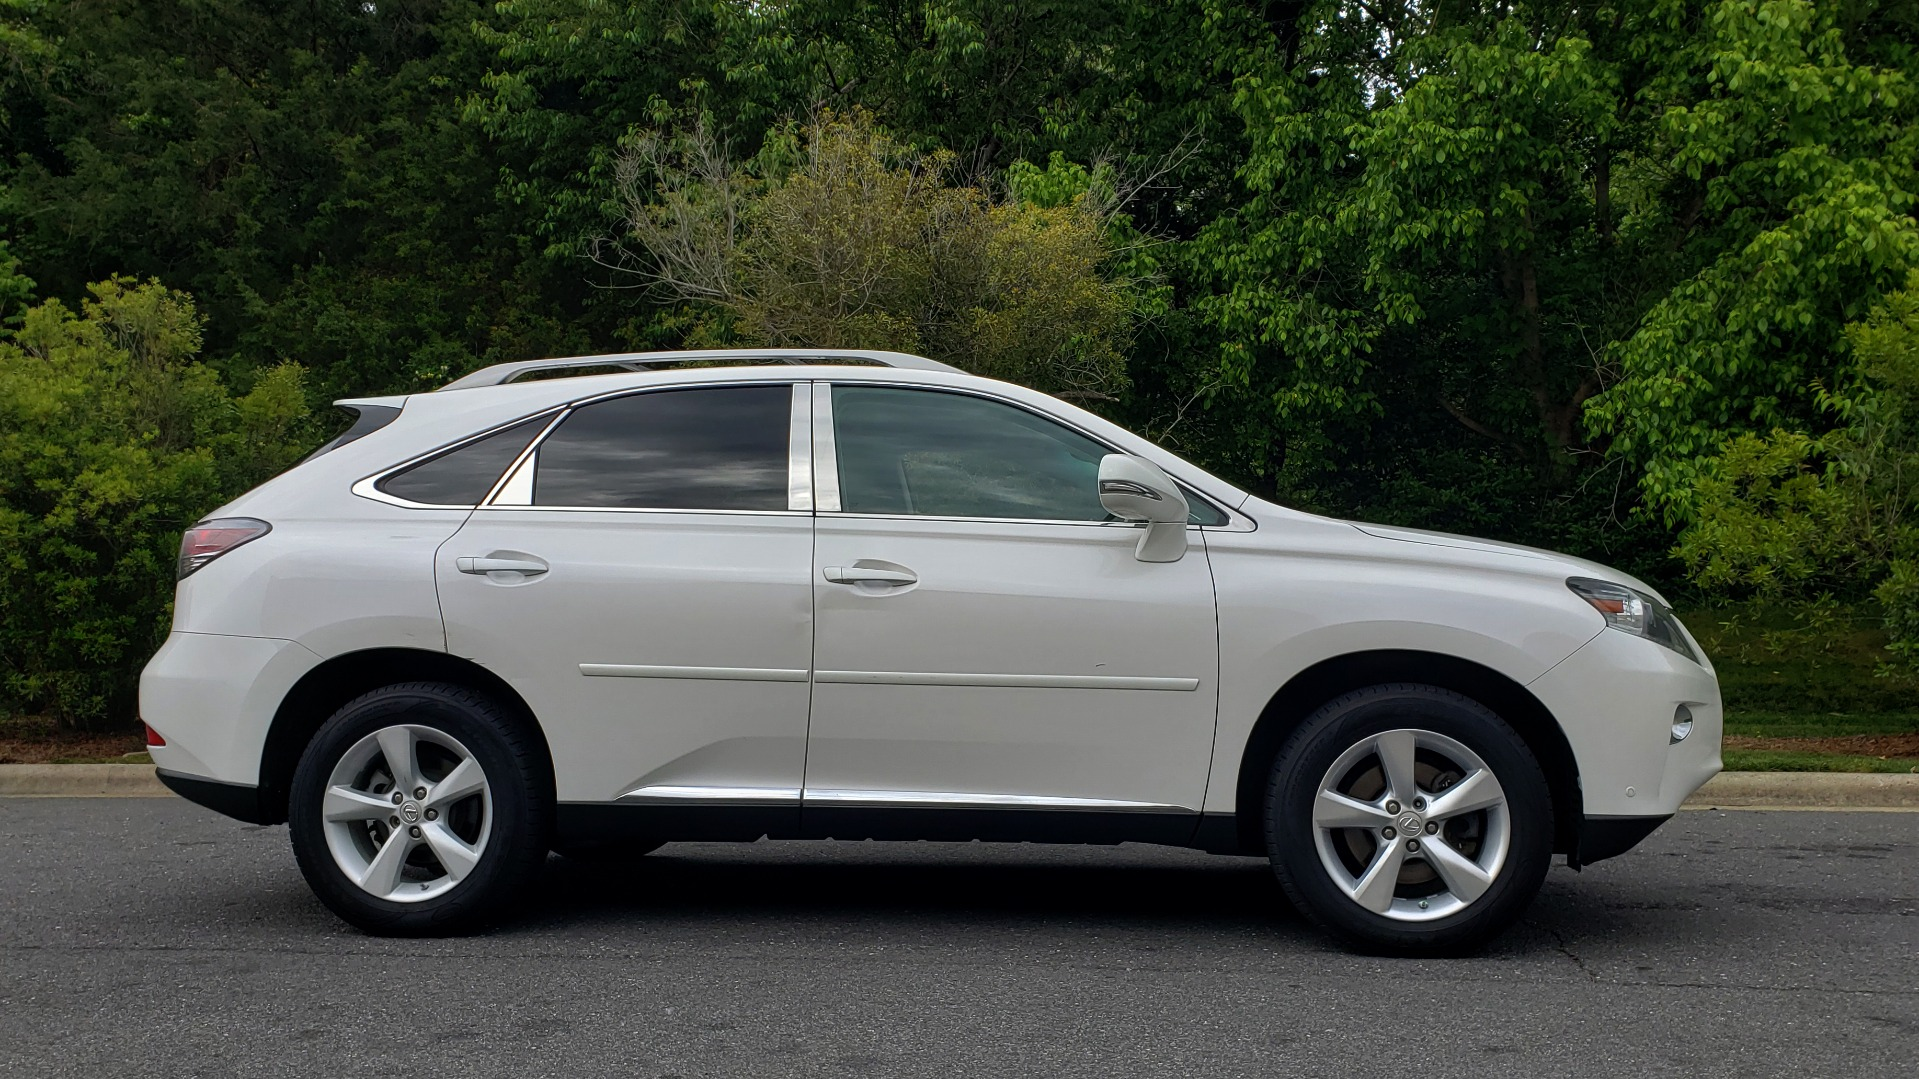 Used 2013 Lexus RX 350 PREMIUM PKG / SUNROOF / BSM / PARK ASST / REARVIEW for sale Sold at Formula Imports in Charlotte NC 28227 5